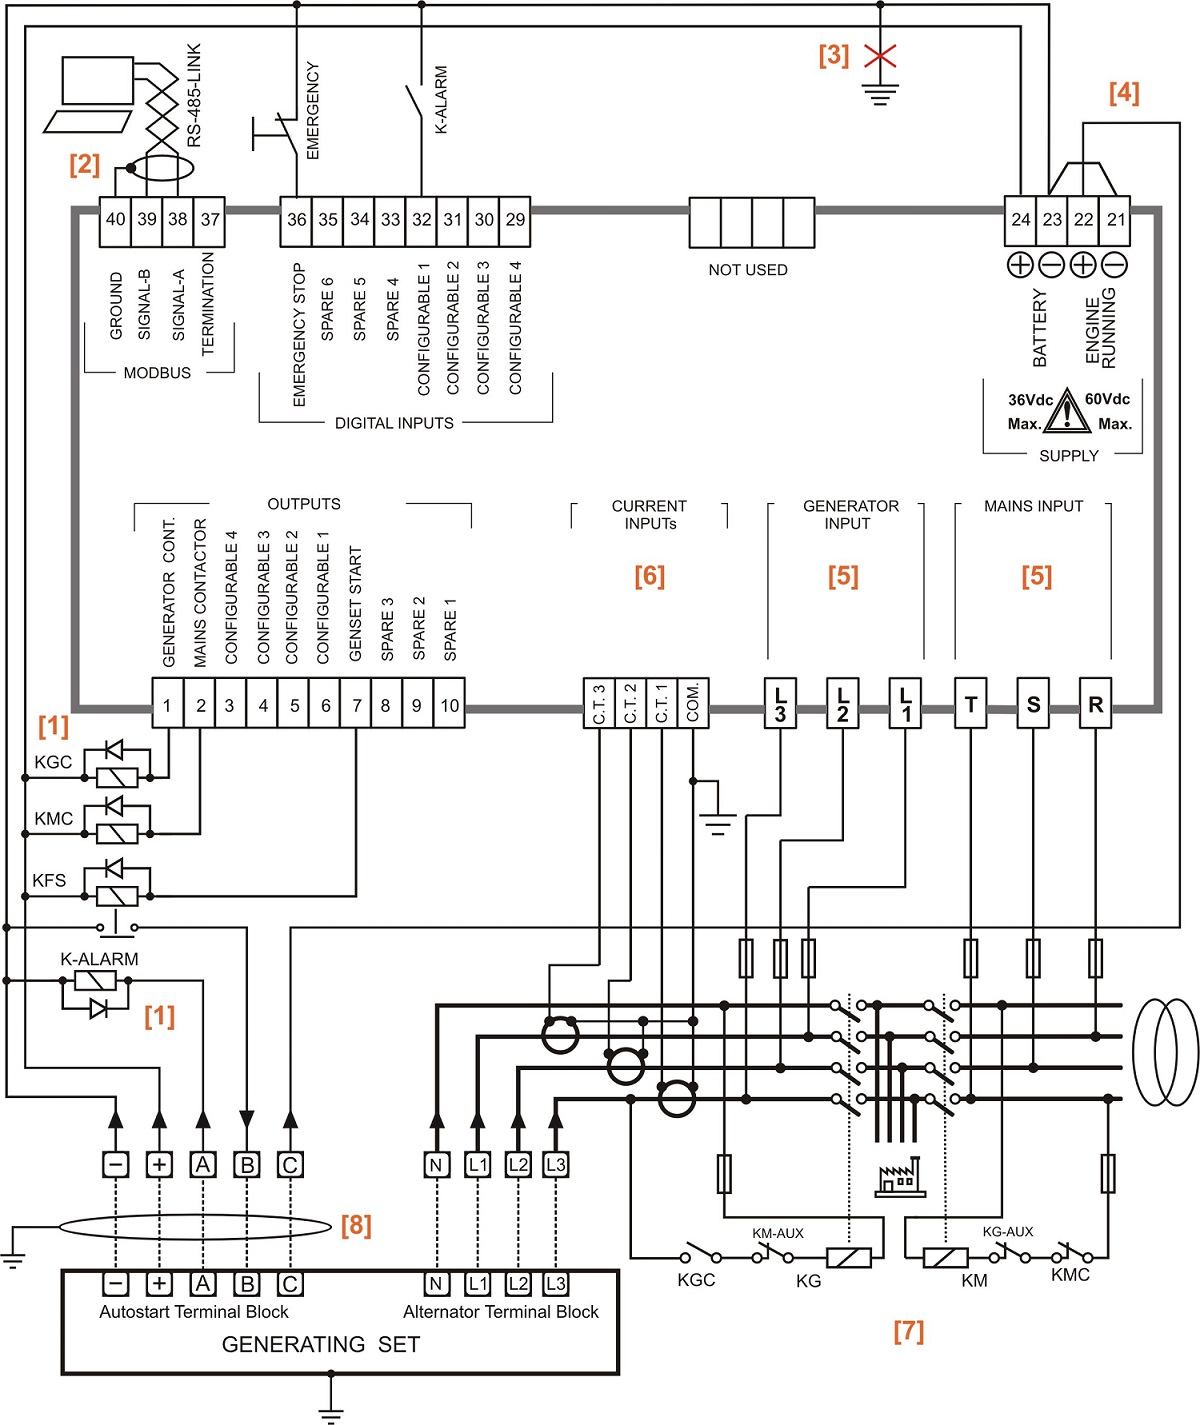 Be28 Automatic Transfer Switch Controller Connections automatic transfer switch circuit diagram genset controller wiring diagram for a transfer switch at nearapp.co